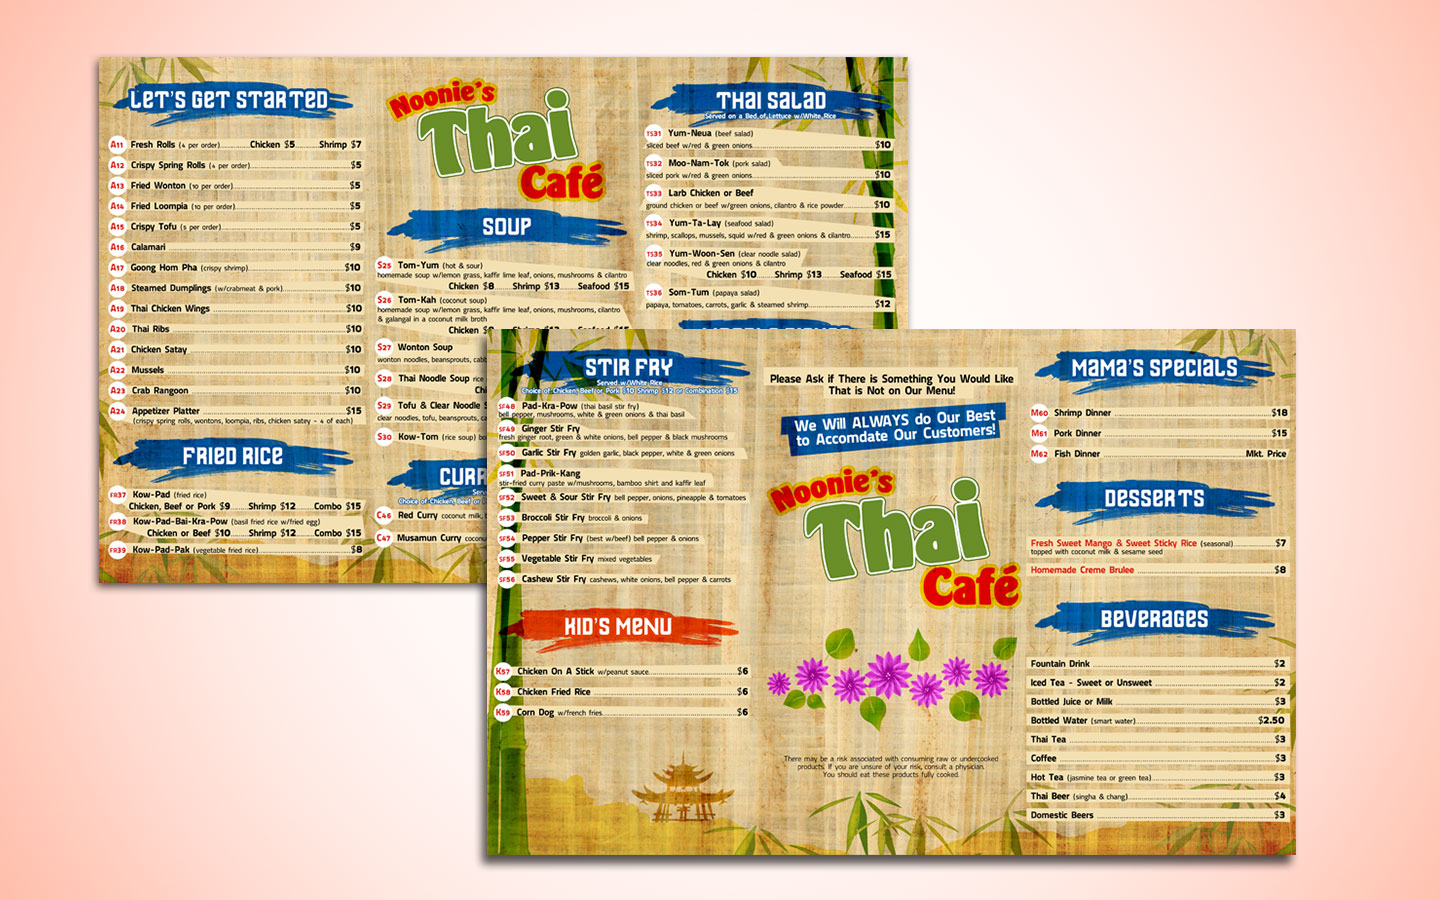 Noonie's Thai Cafe Menu